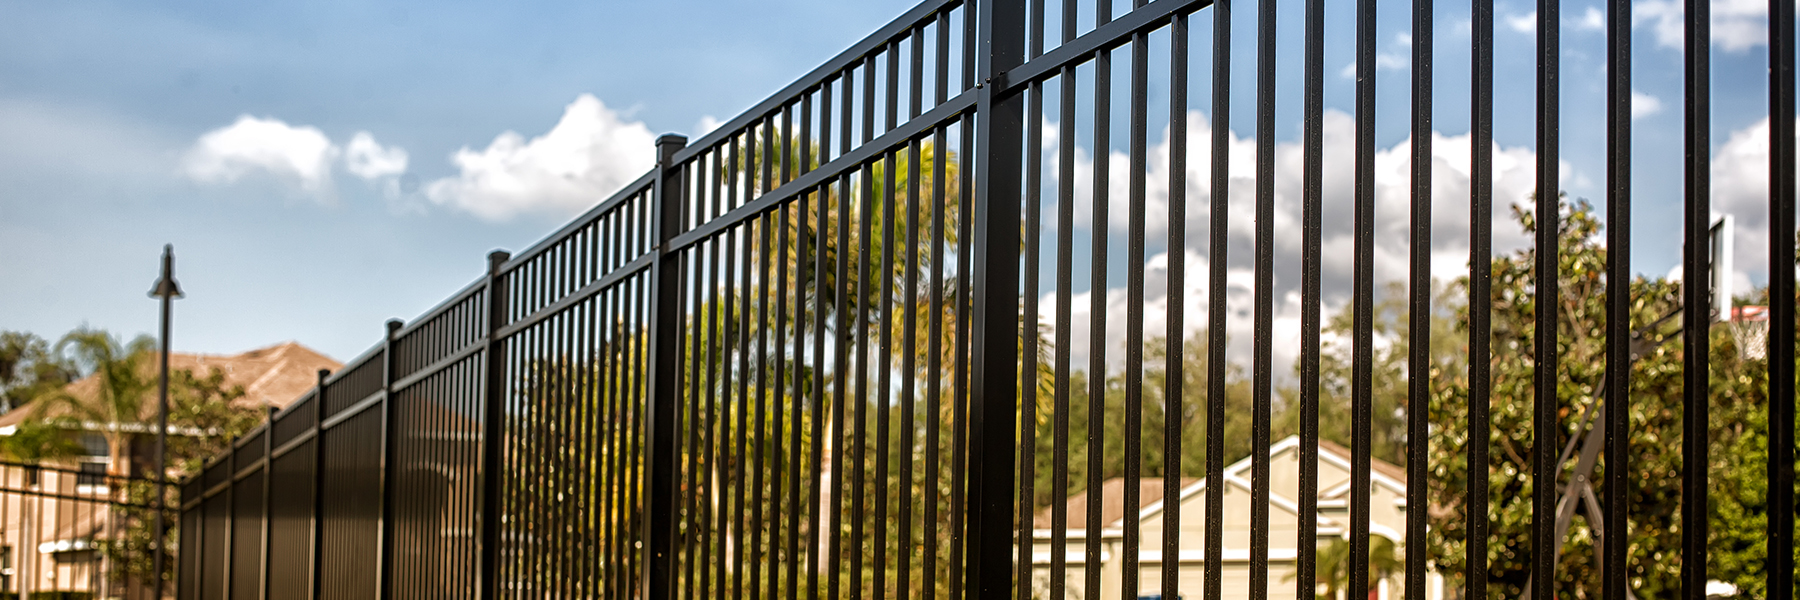 Myrtle Beach Fence Company